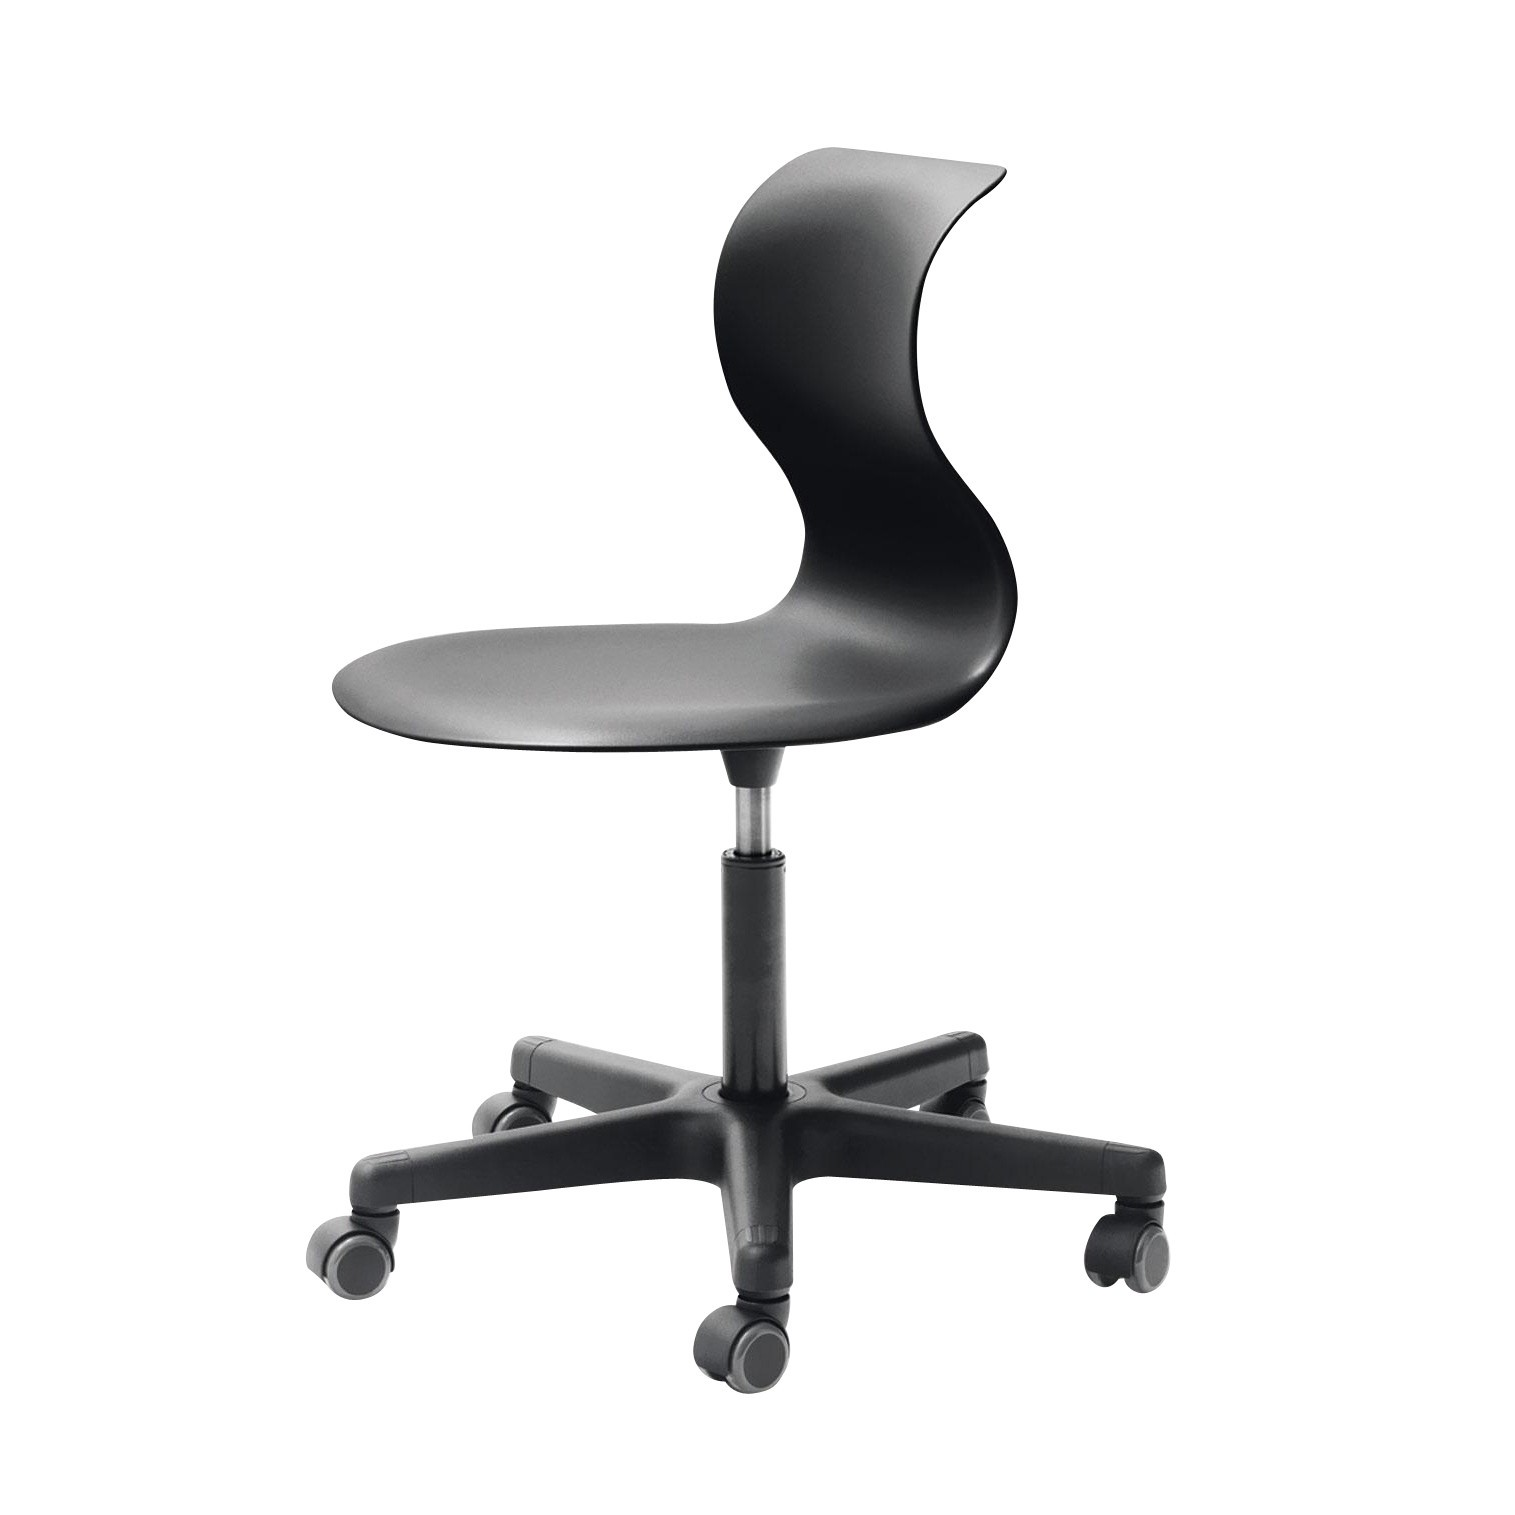 Chair On Wheels Pro 6 Swivel Chair With Wheels